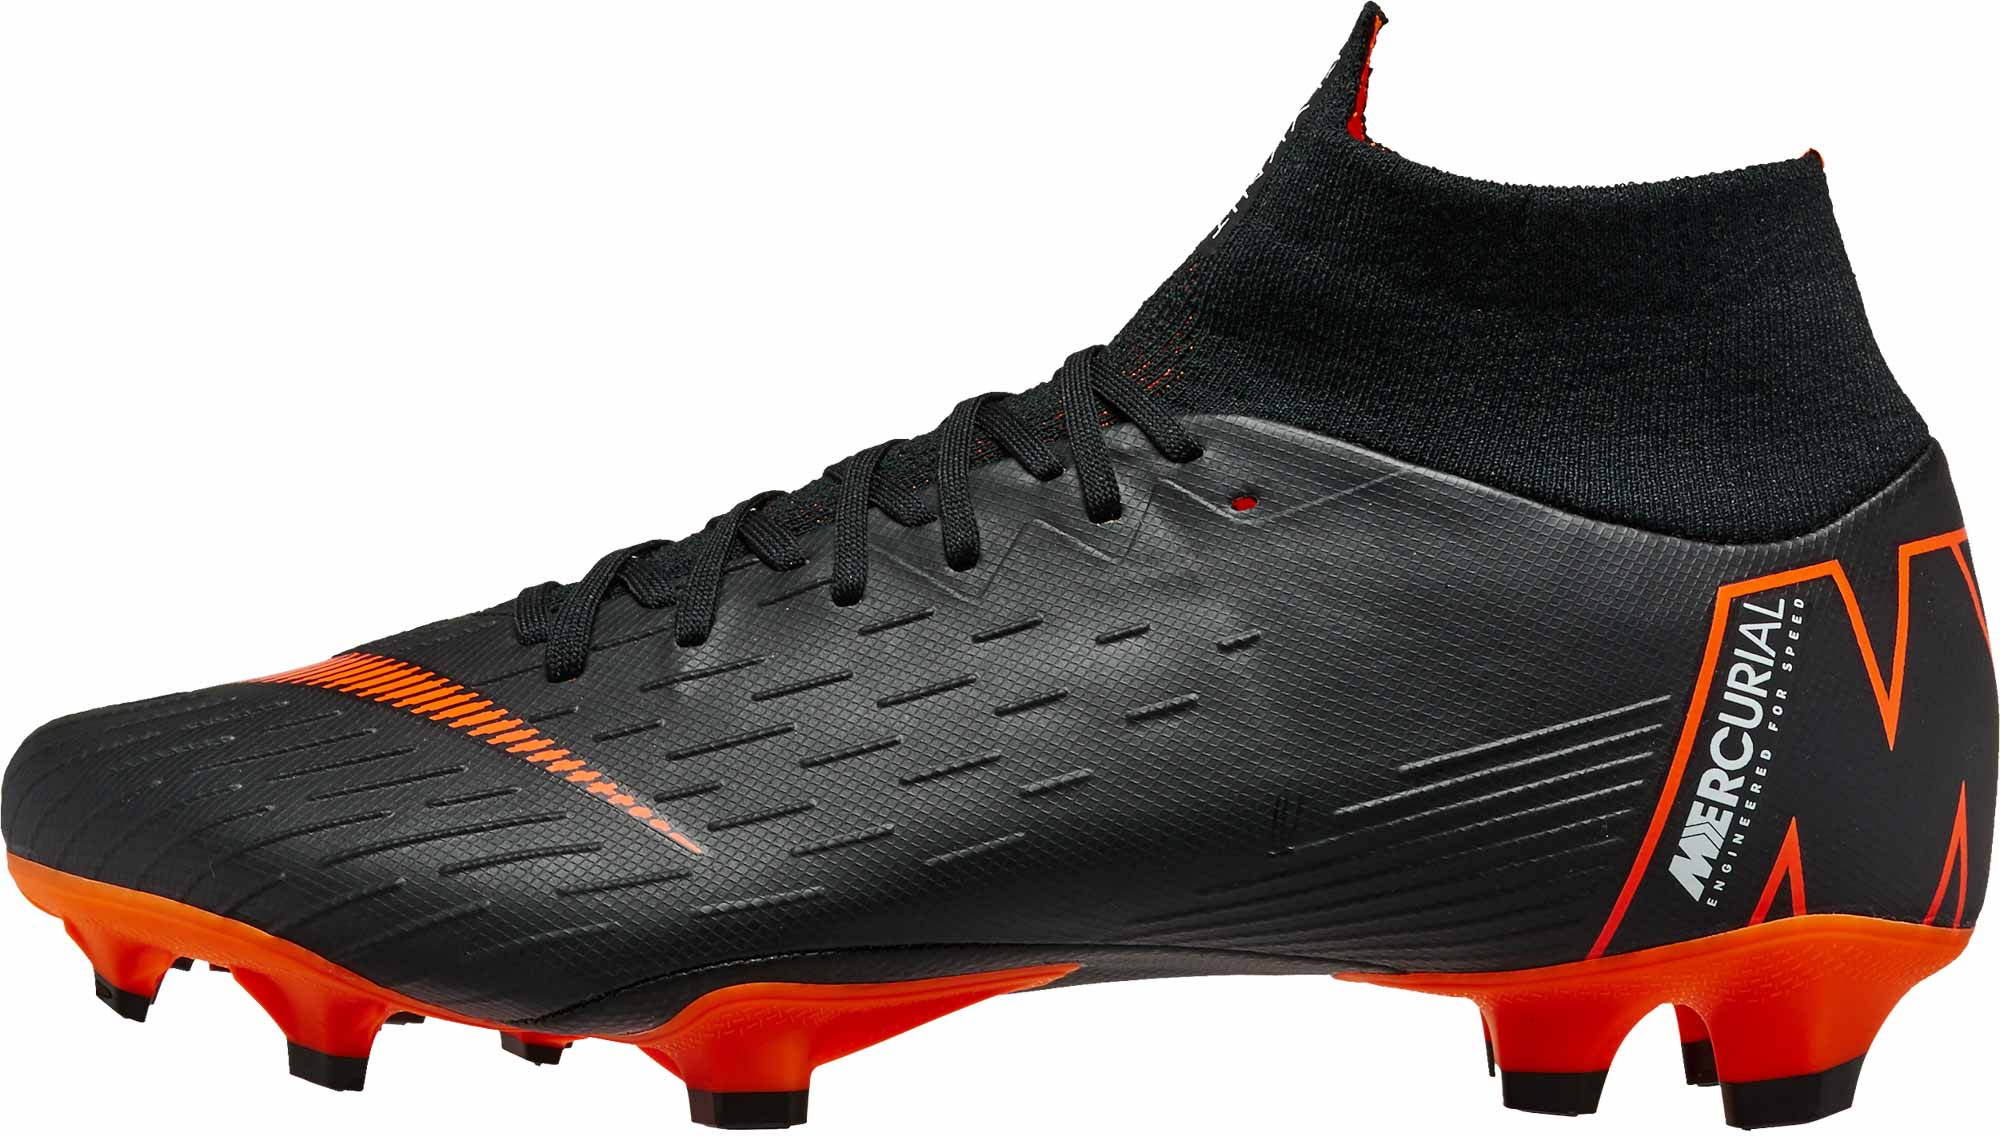 08795794686 Reviewing the Nike Mercurial Superfly 6 Pro - The Instep